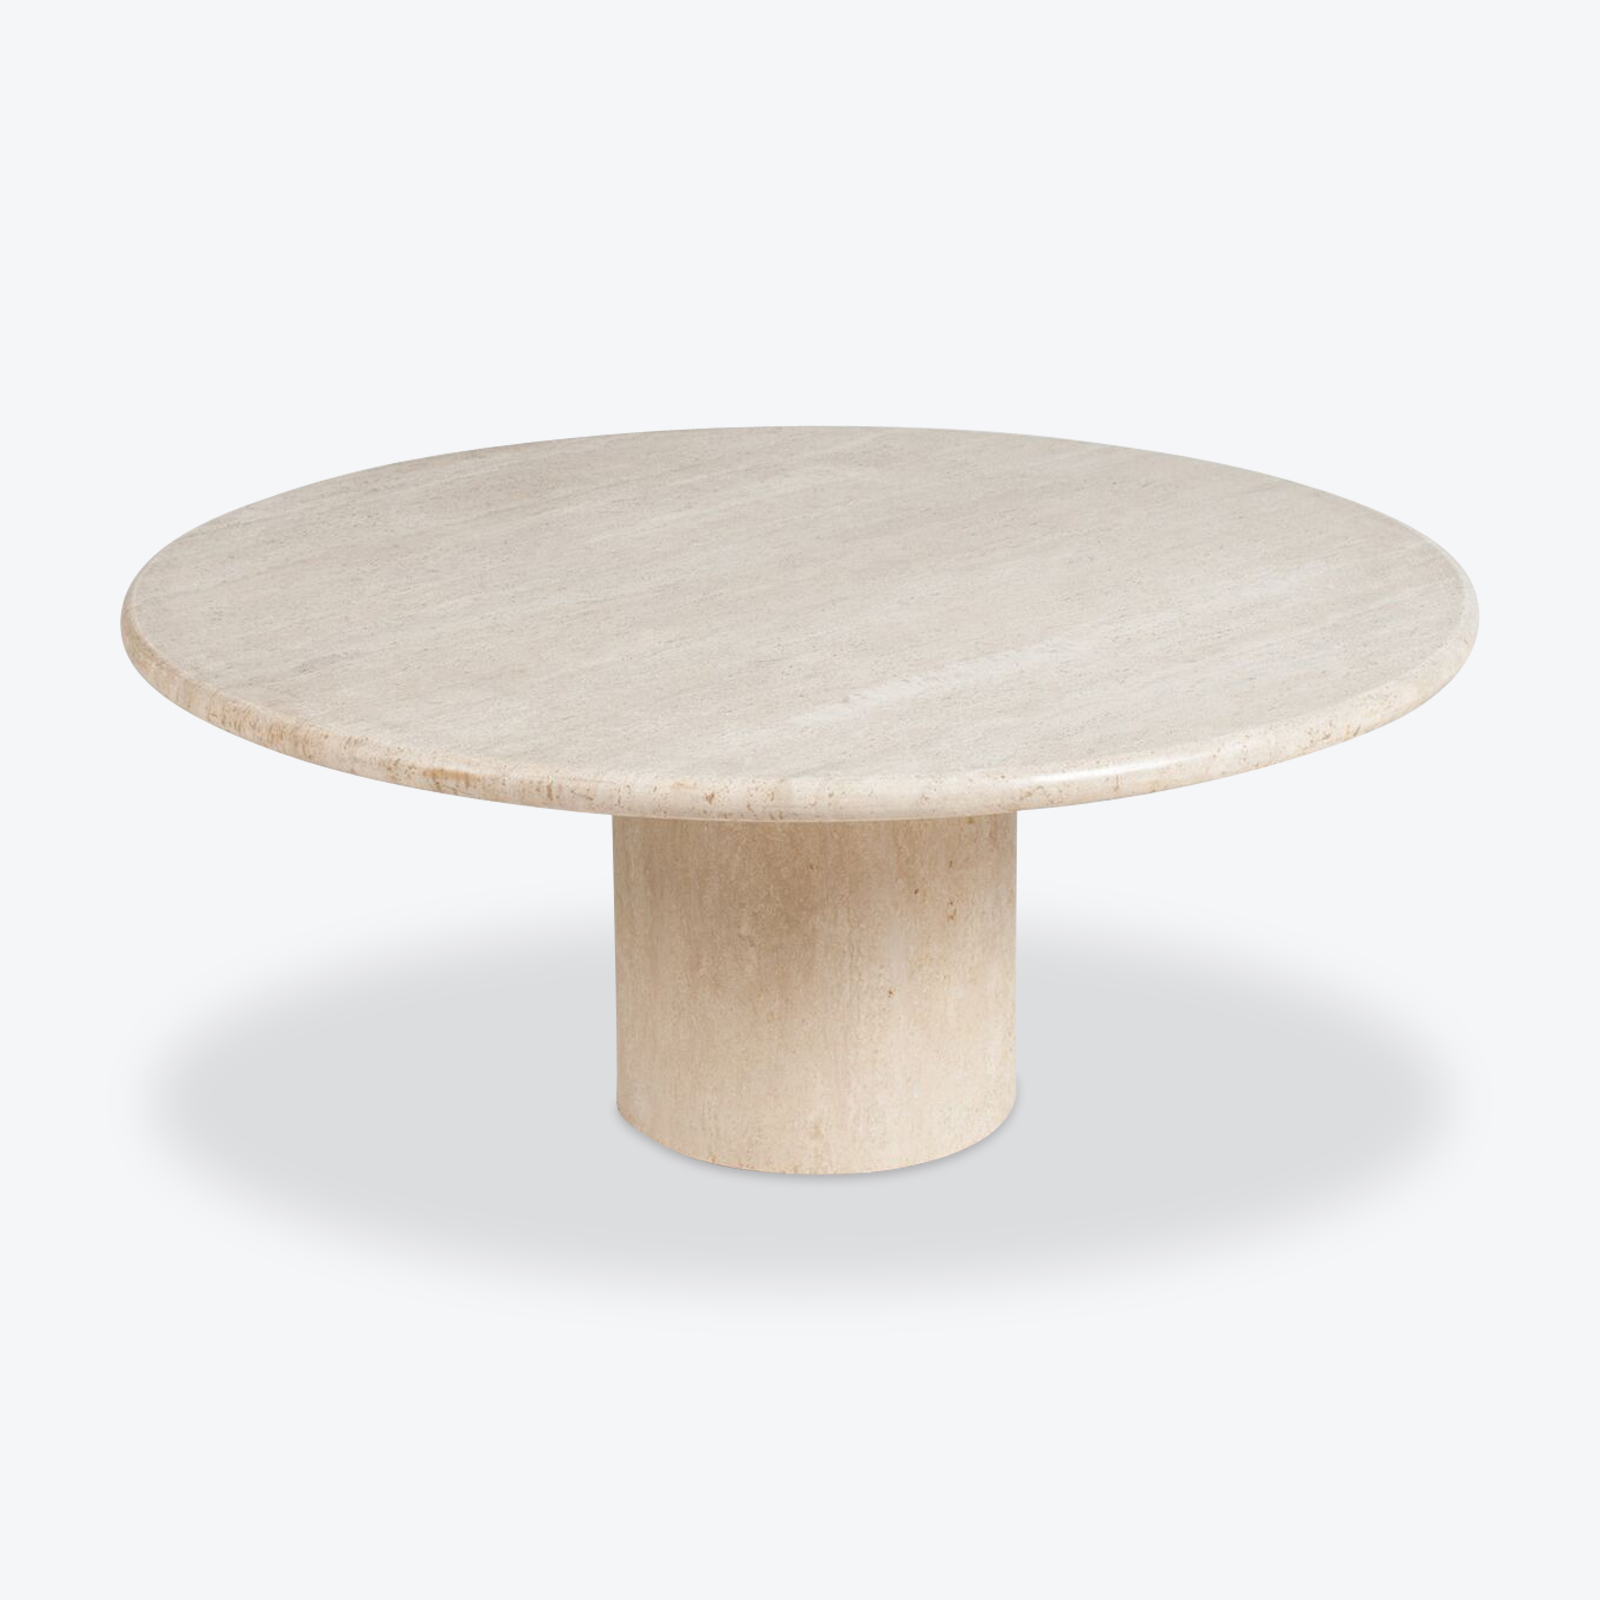 Round Coffee Table In Travertine 1960s Italy 00.jpg